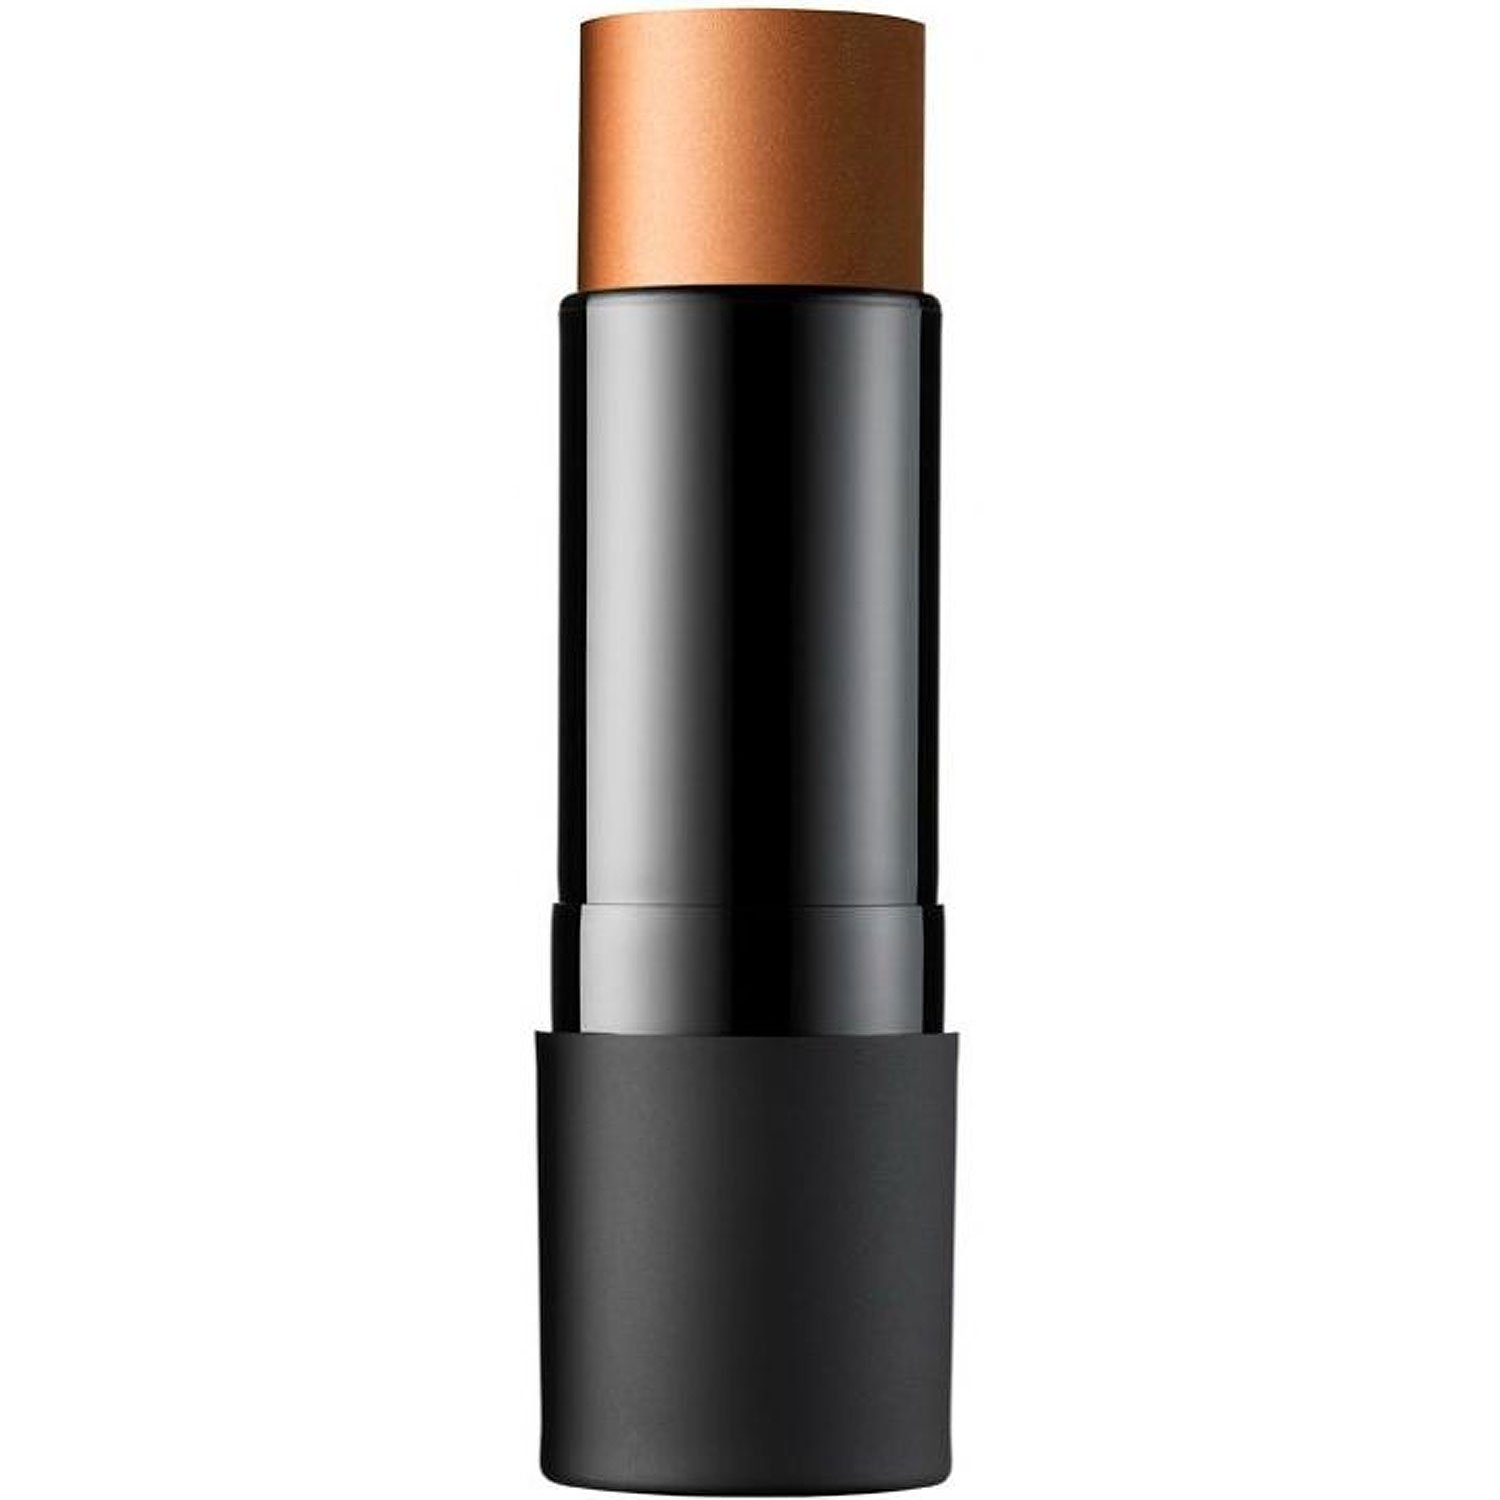 NARS Multiple Bronzer, Malaysia (For Medium To Dark Complexions With Red Undertones), 0.5 Ounce